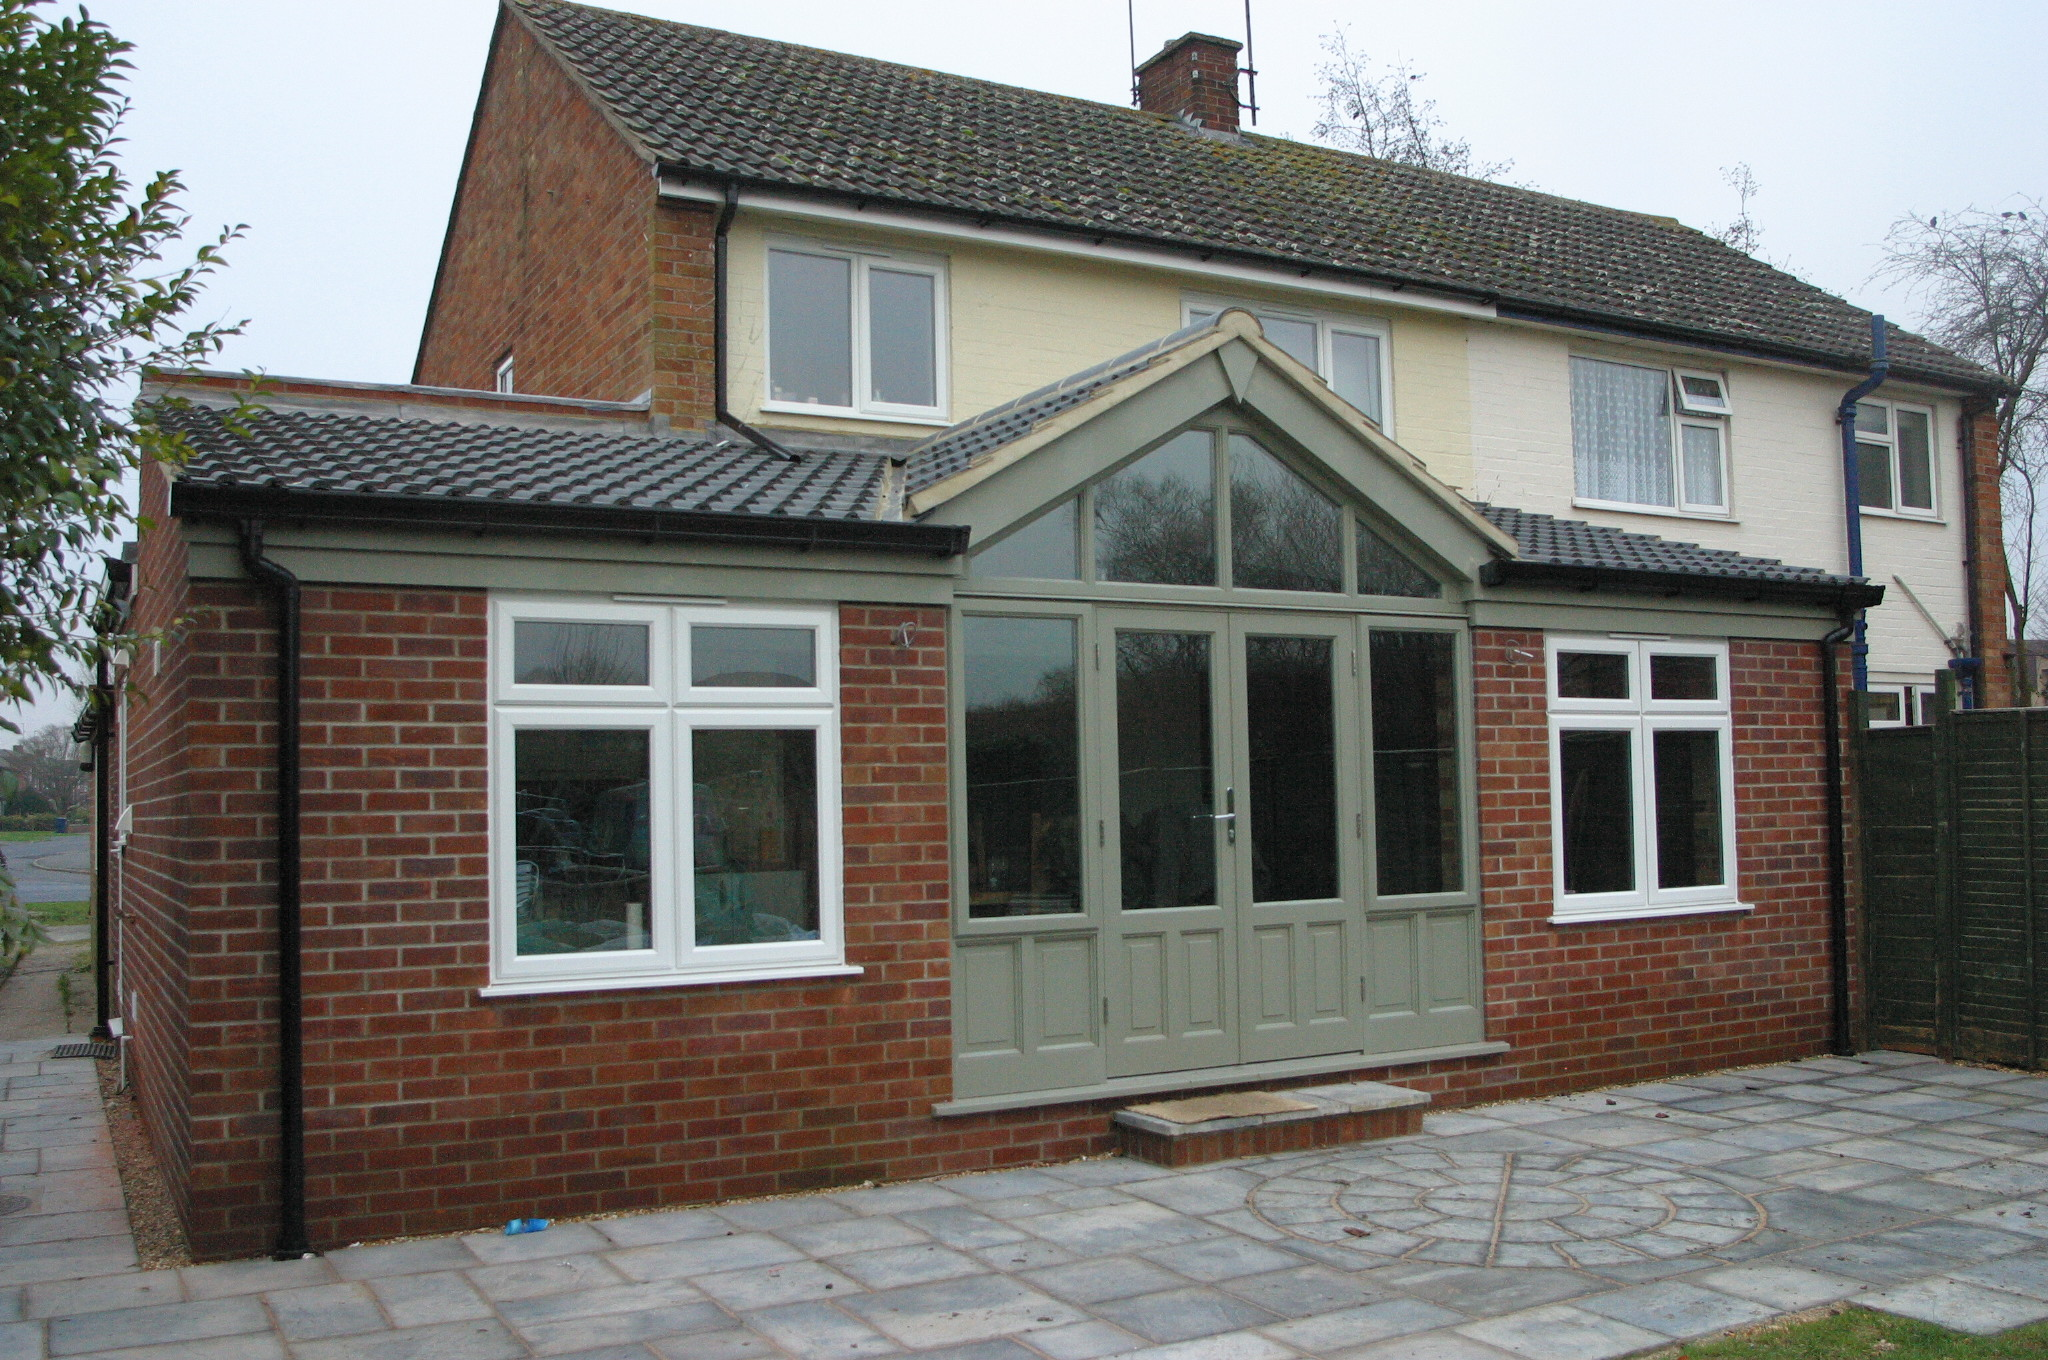 Kitchen extension project 6 heritage orangeries for Garden room extensions